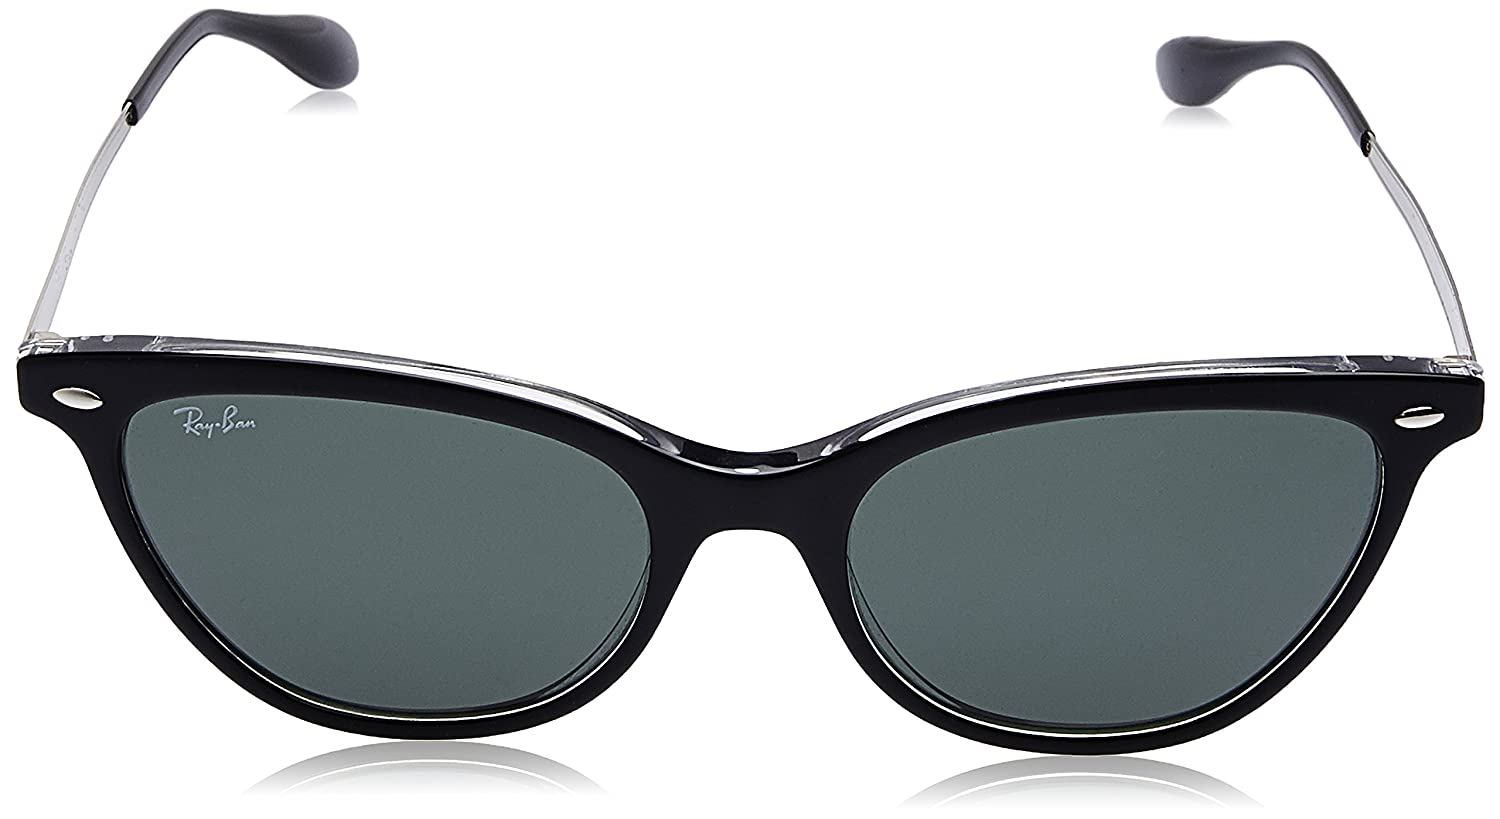 9adbf767281 Ray-Ban Women s 0rb4360 Sunglasses